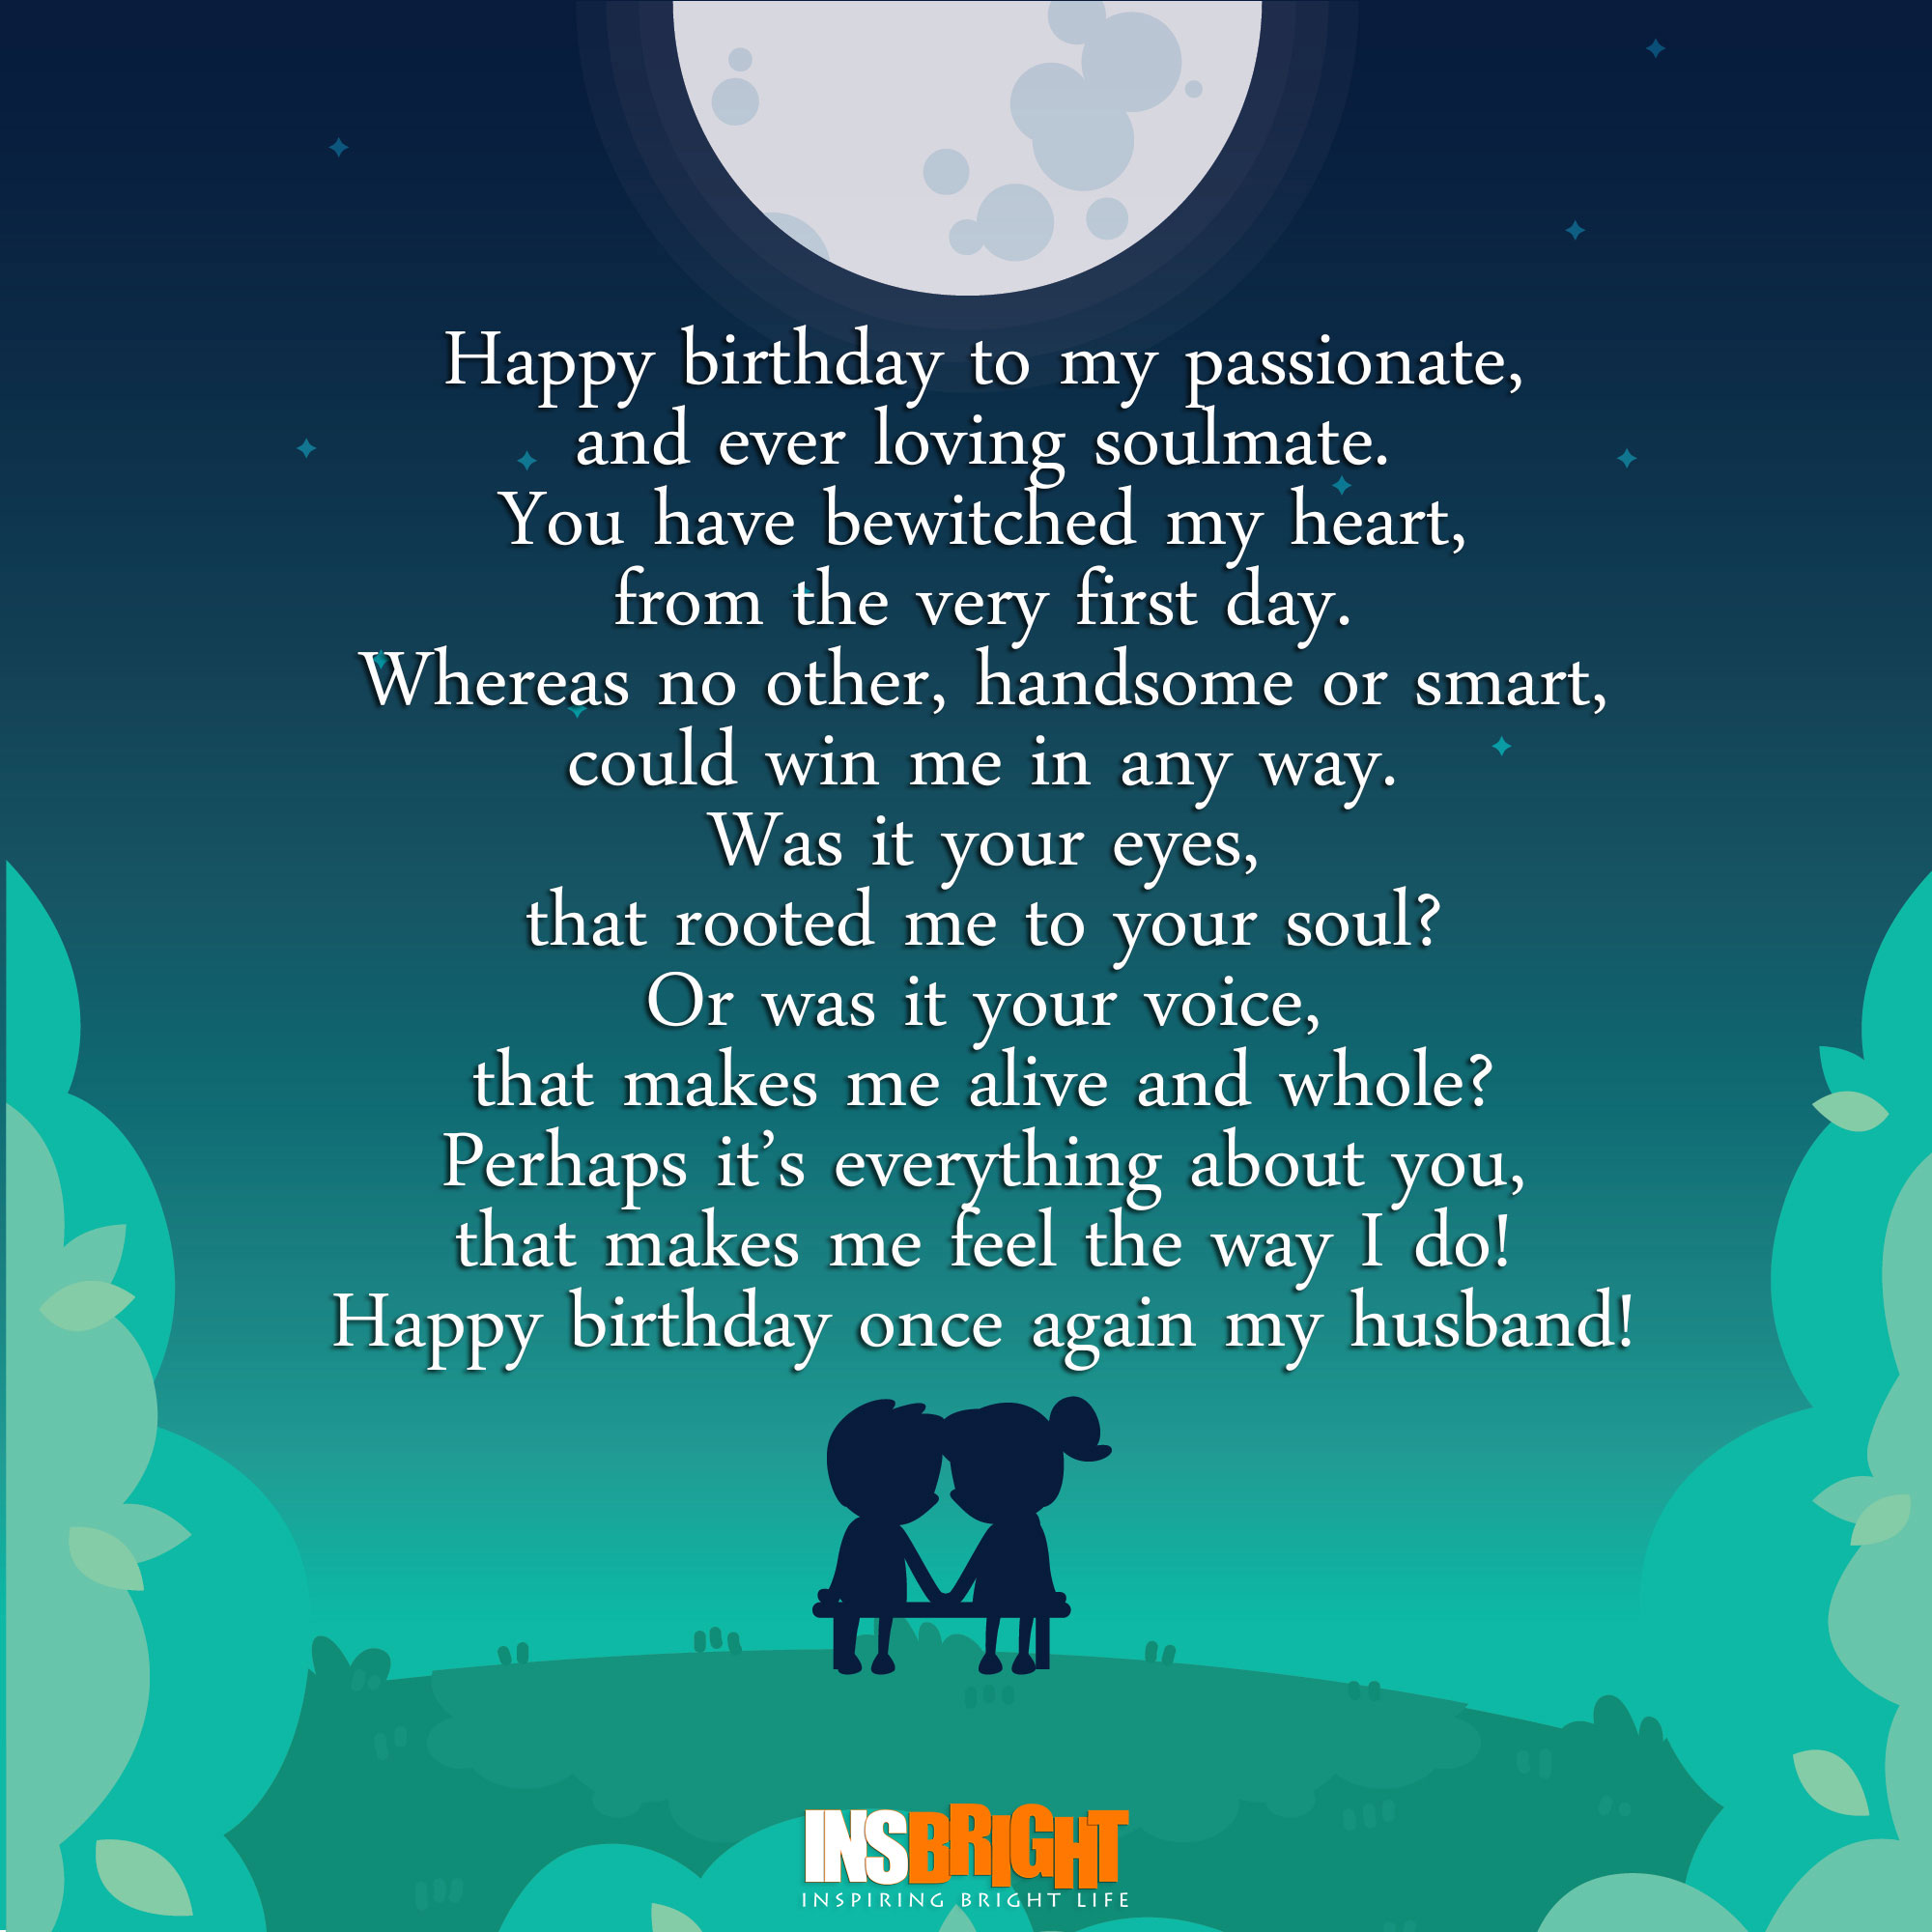 Romantic Happy Birthday Poems For Husband From Wife Insbright